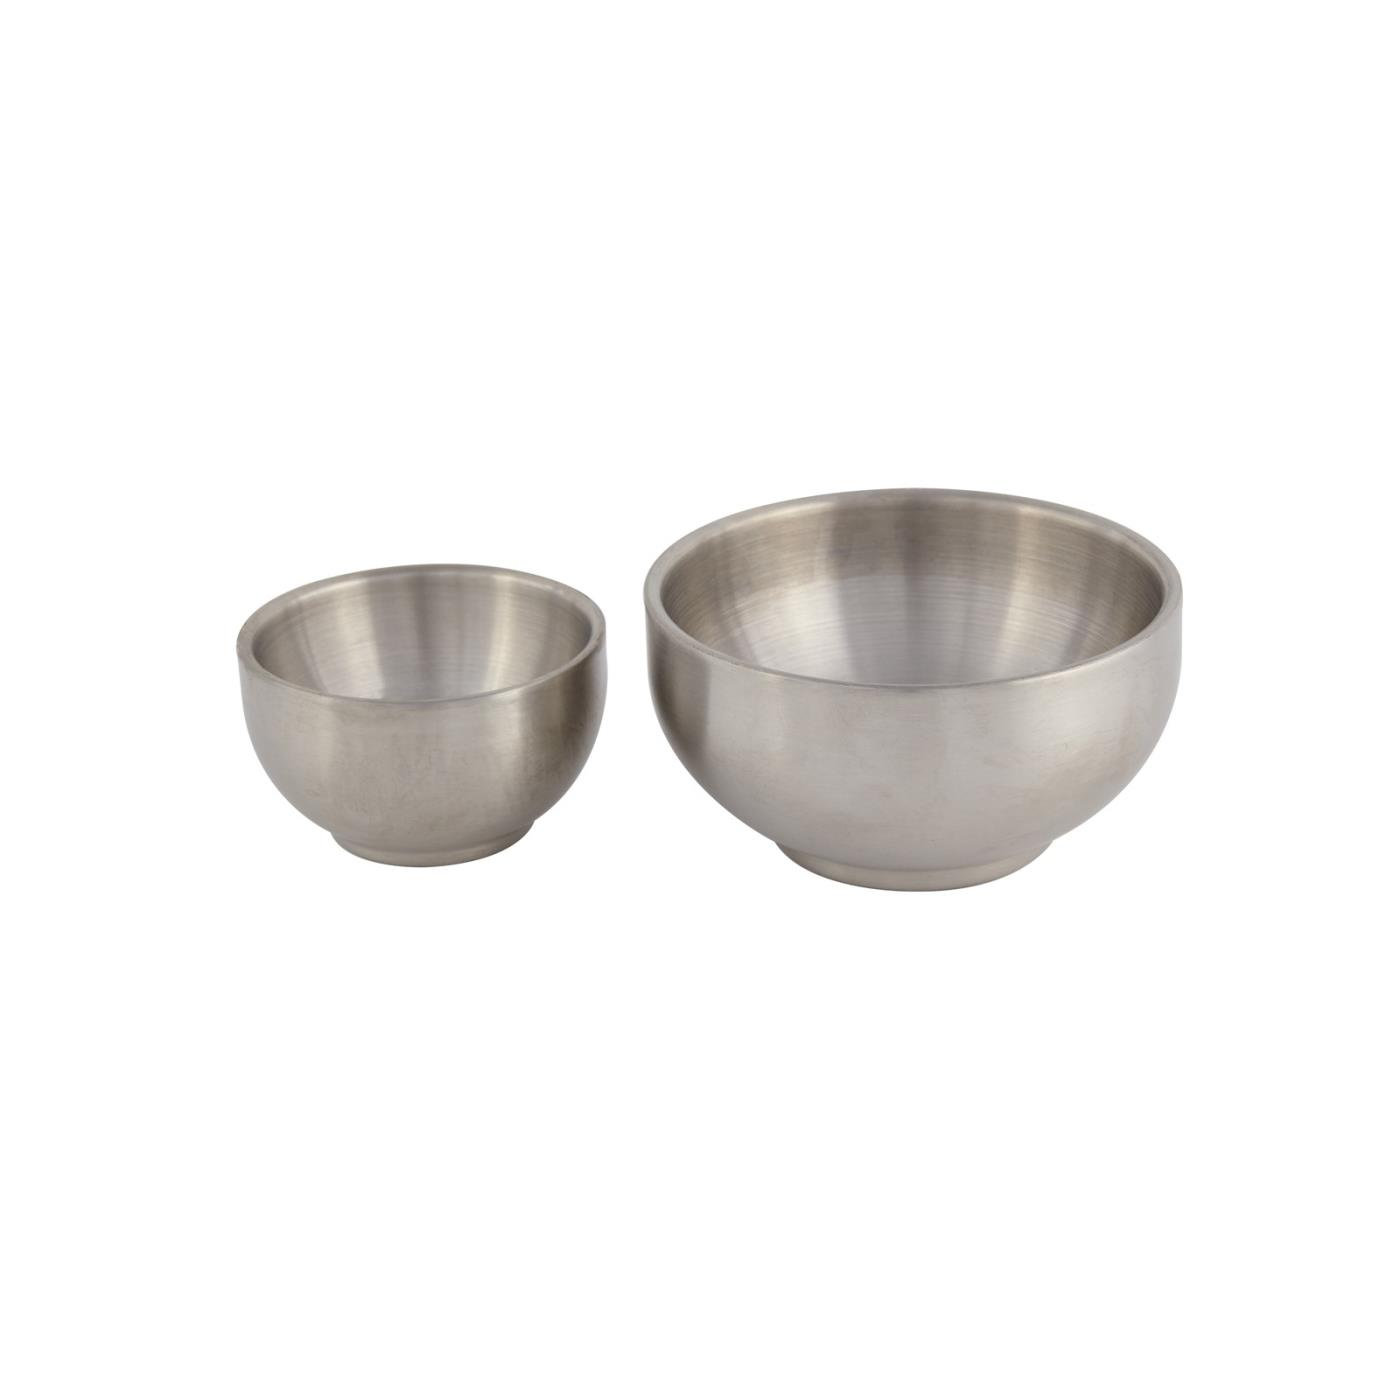 Stainless Steel Harmony Bowl